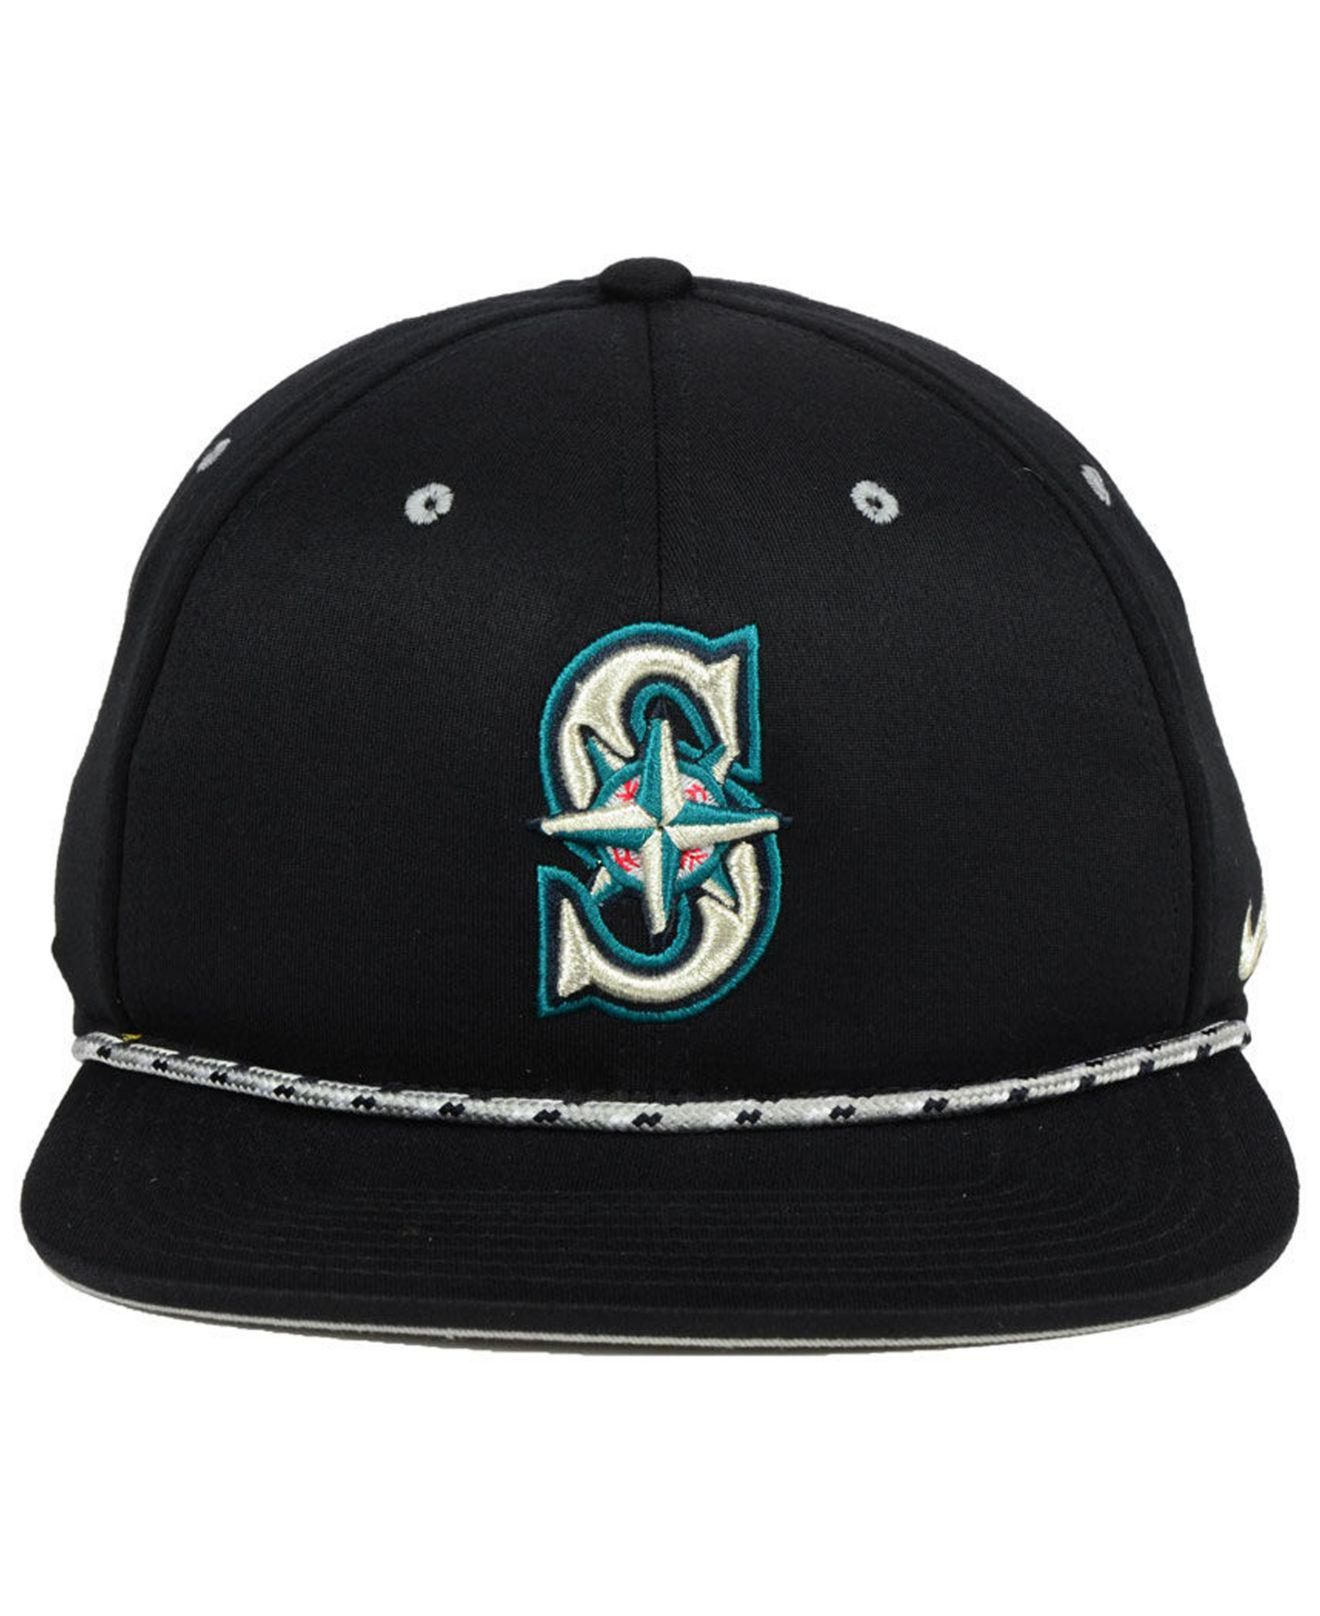 best service 6ff1d bd3e2 ... clearance lyst nike seattle mariners string bill snapback cap in black  for men d79cc 32cb0